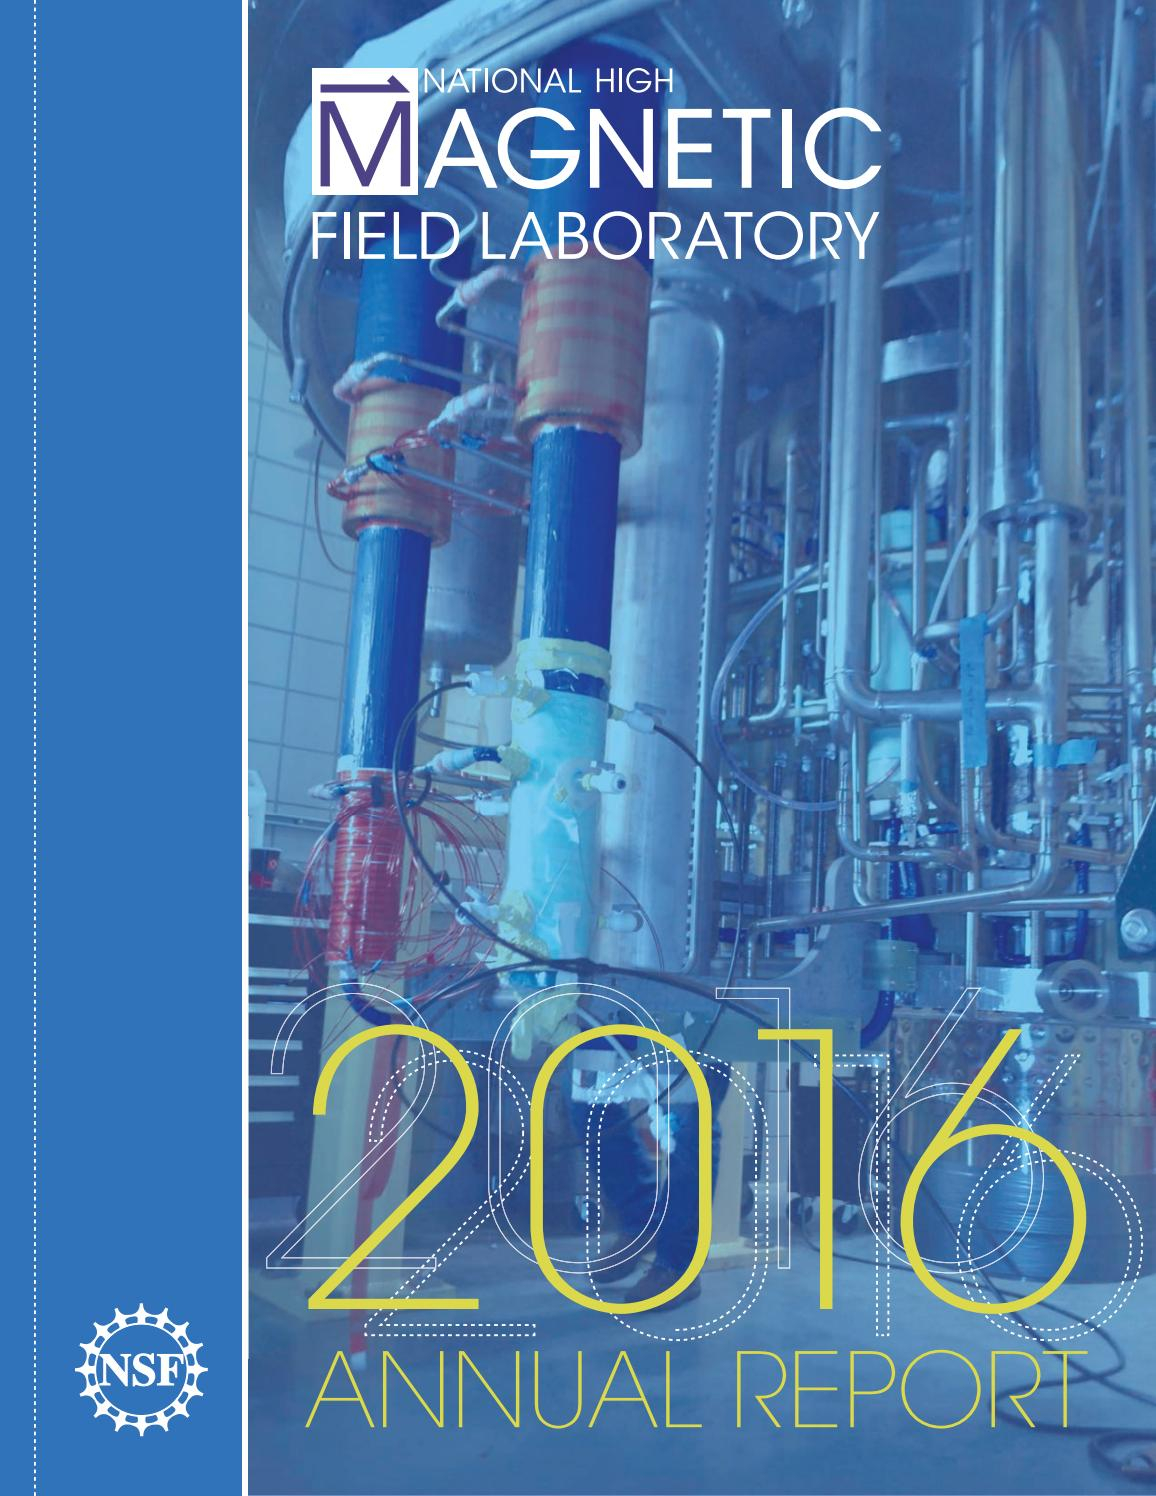 2016 Annual Report For The National High Magnetic Field